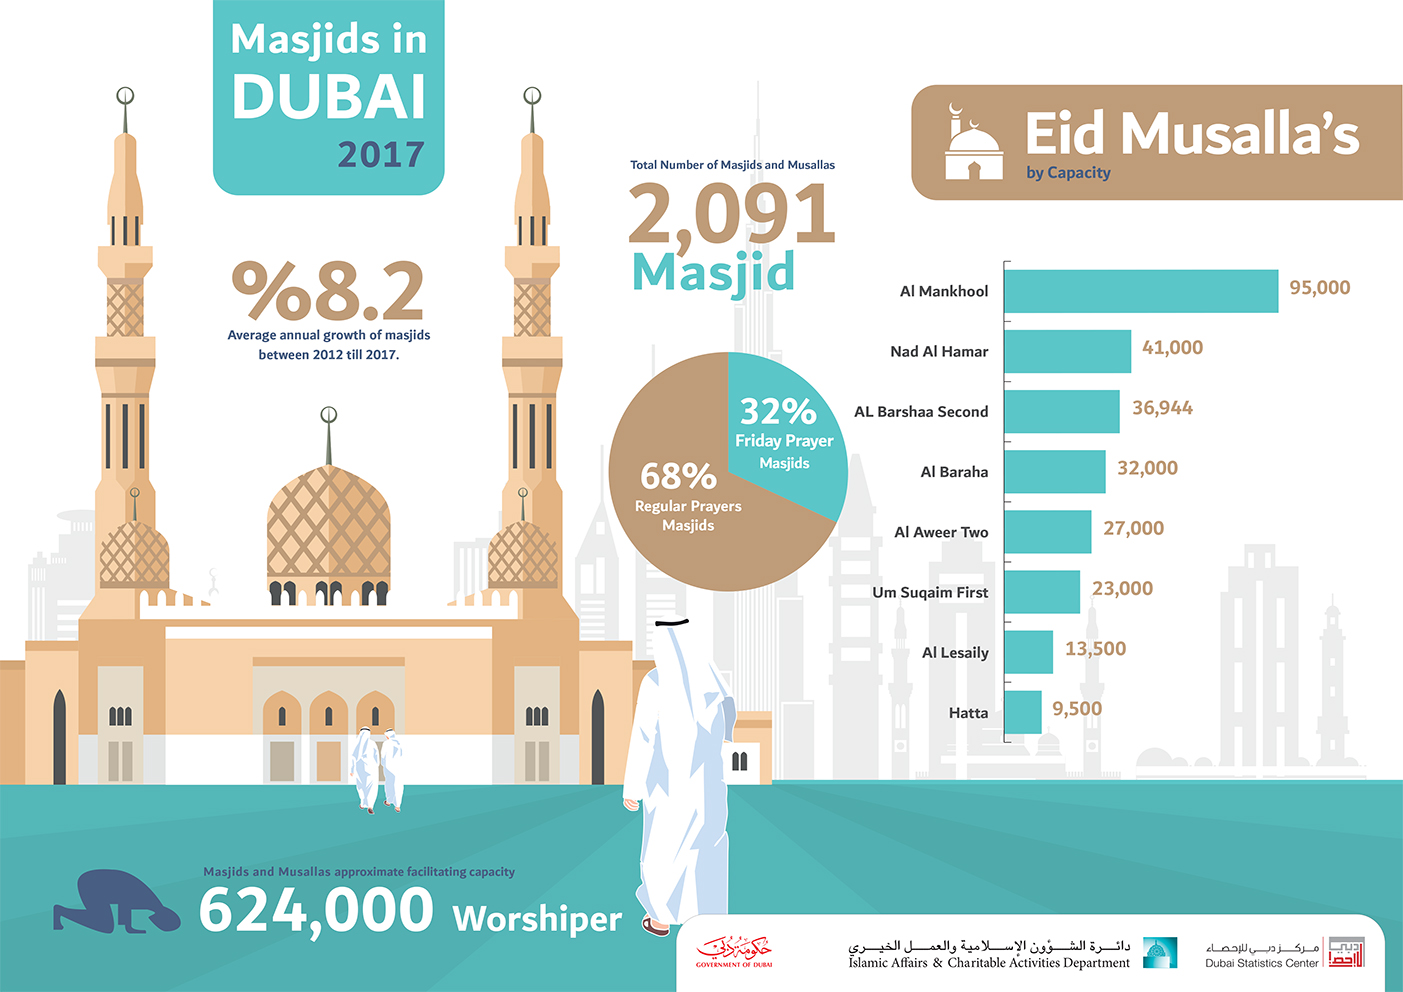 2091 Masjids in Dubai with a capacity facilitating Up To 624,000 worshiper